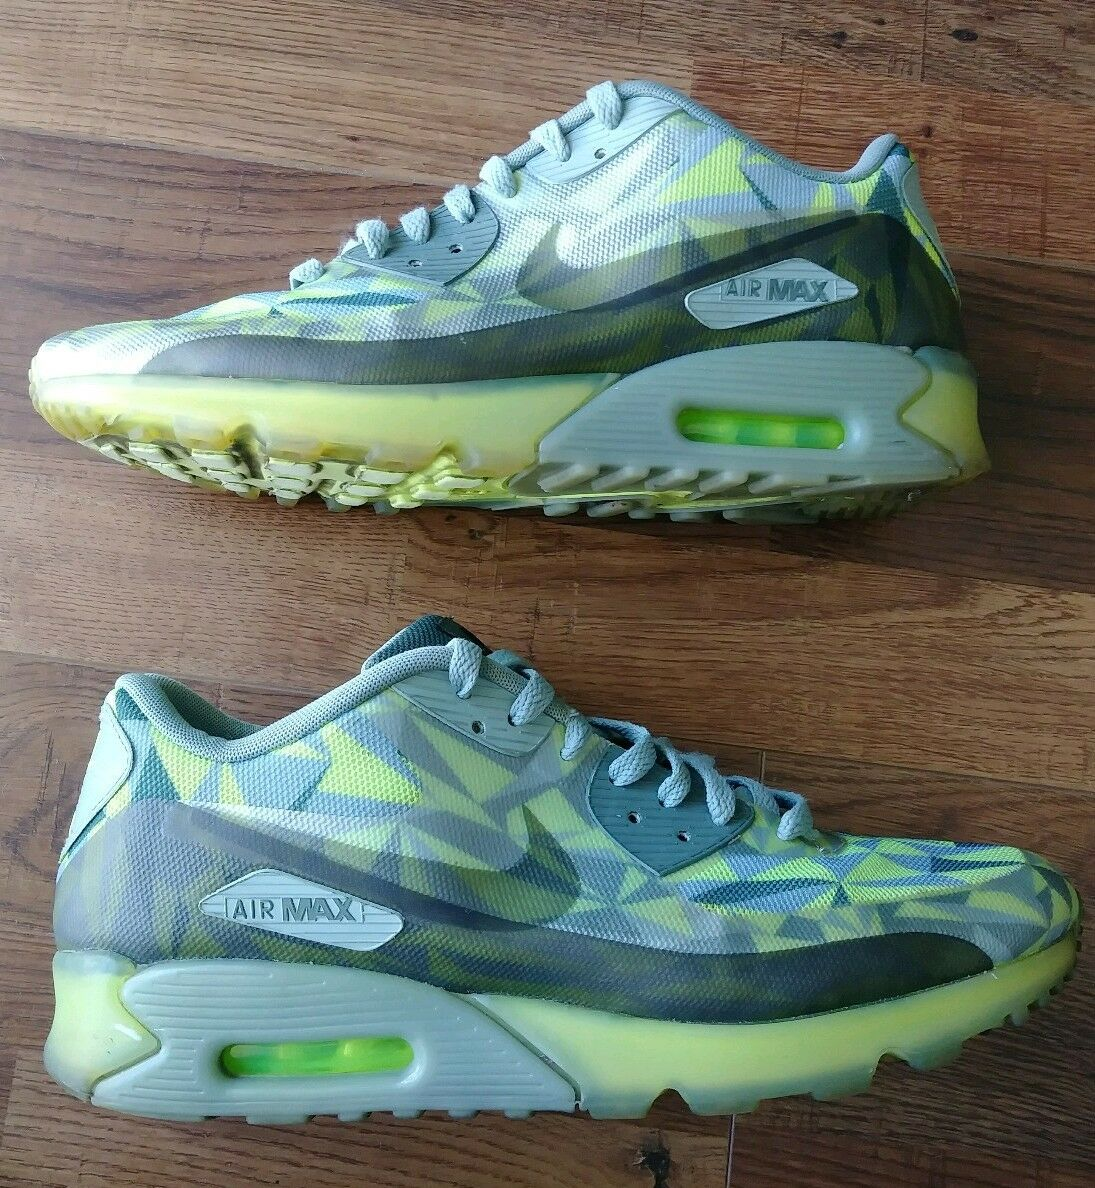 NIKE AIR MAX 90 ICE VOLT-MICA GREEN Size US 11